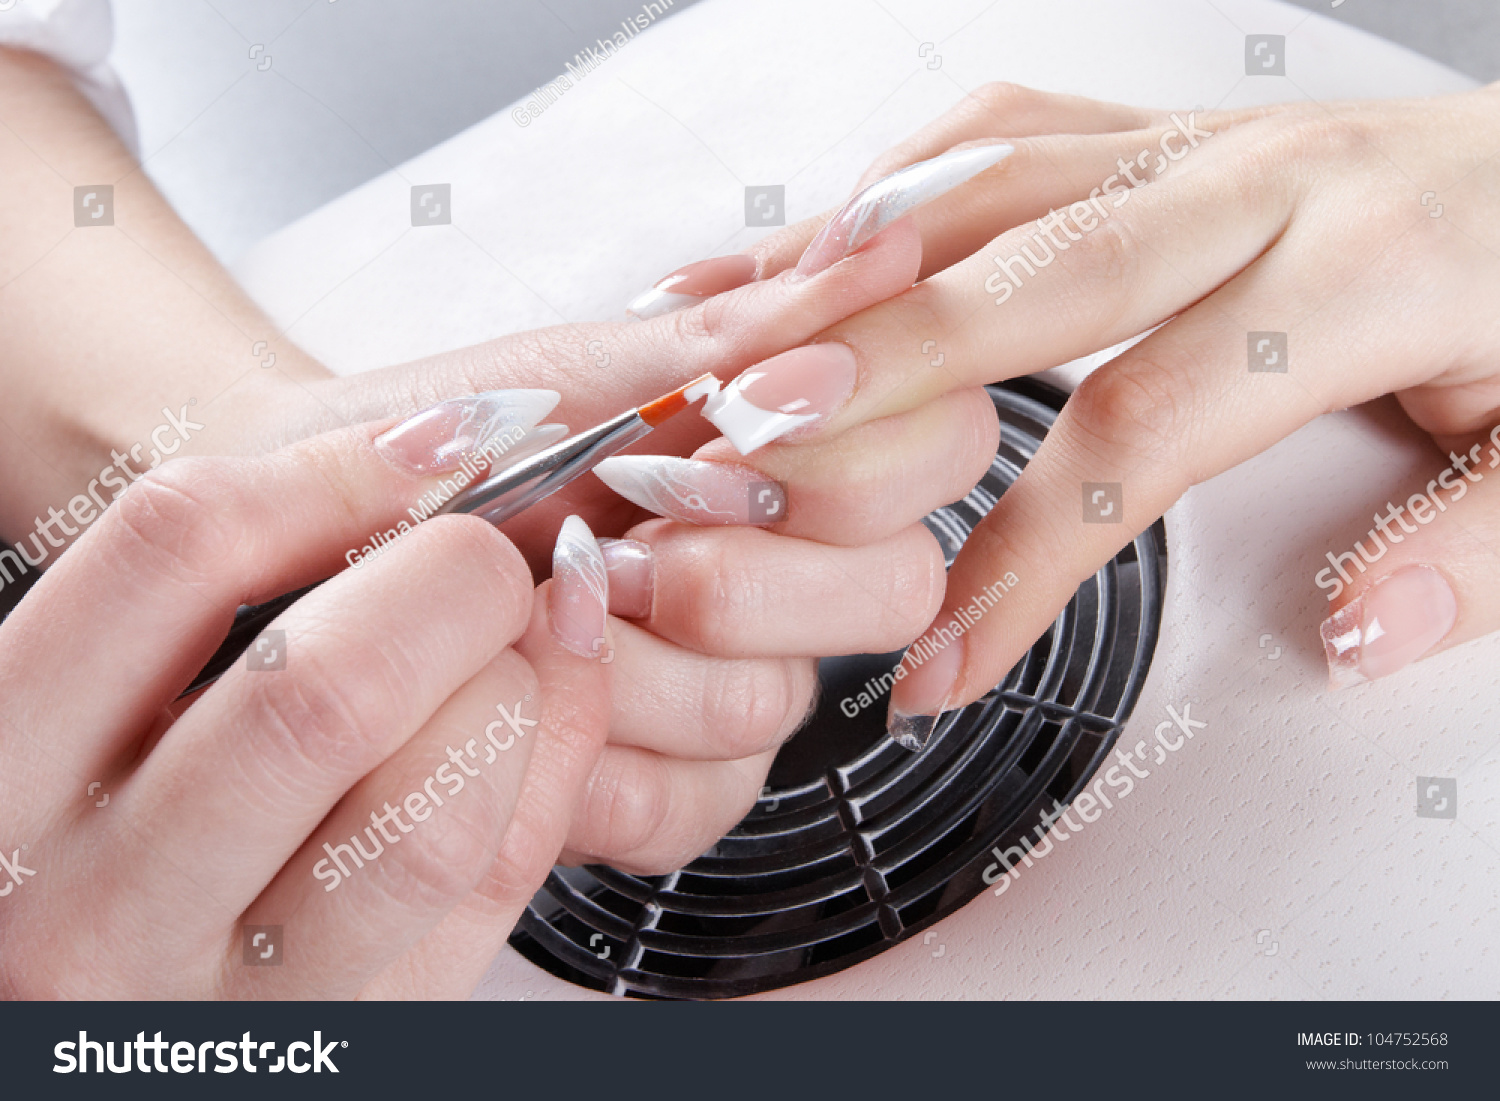 Manicure Master Make Nail Extension Drawing Stock Photo (Safe to Use ...